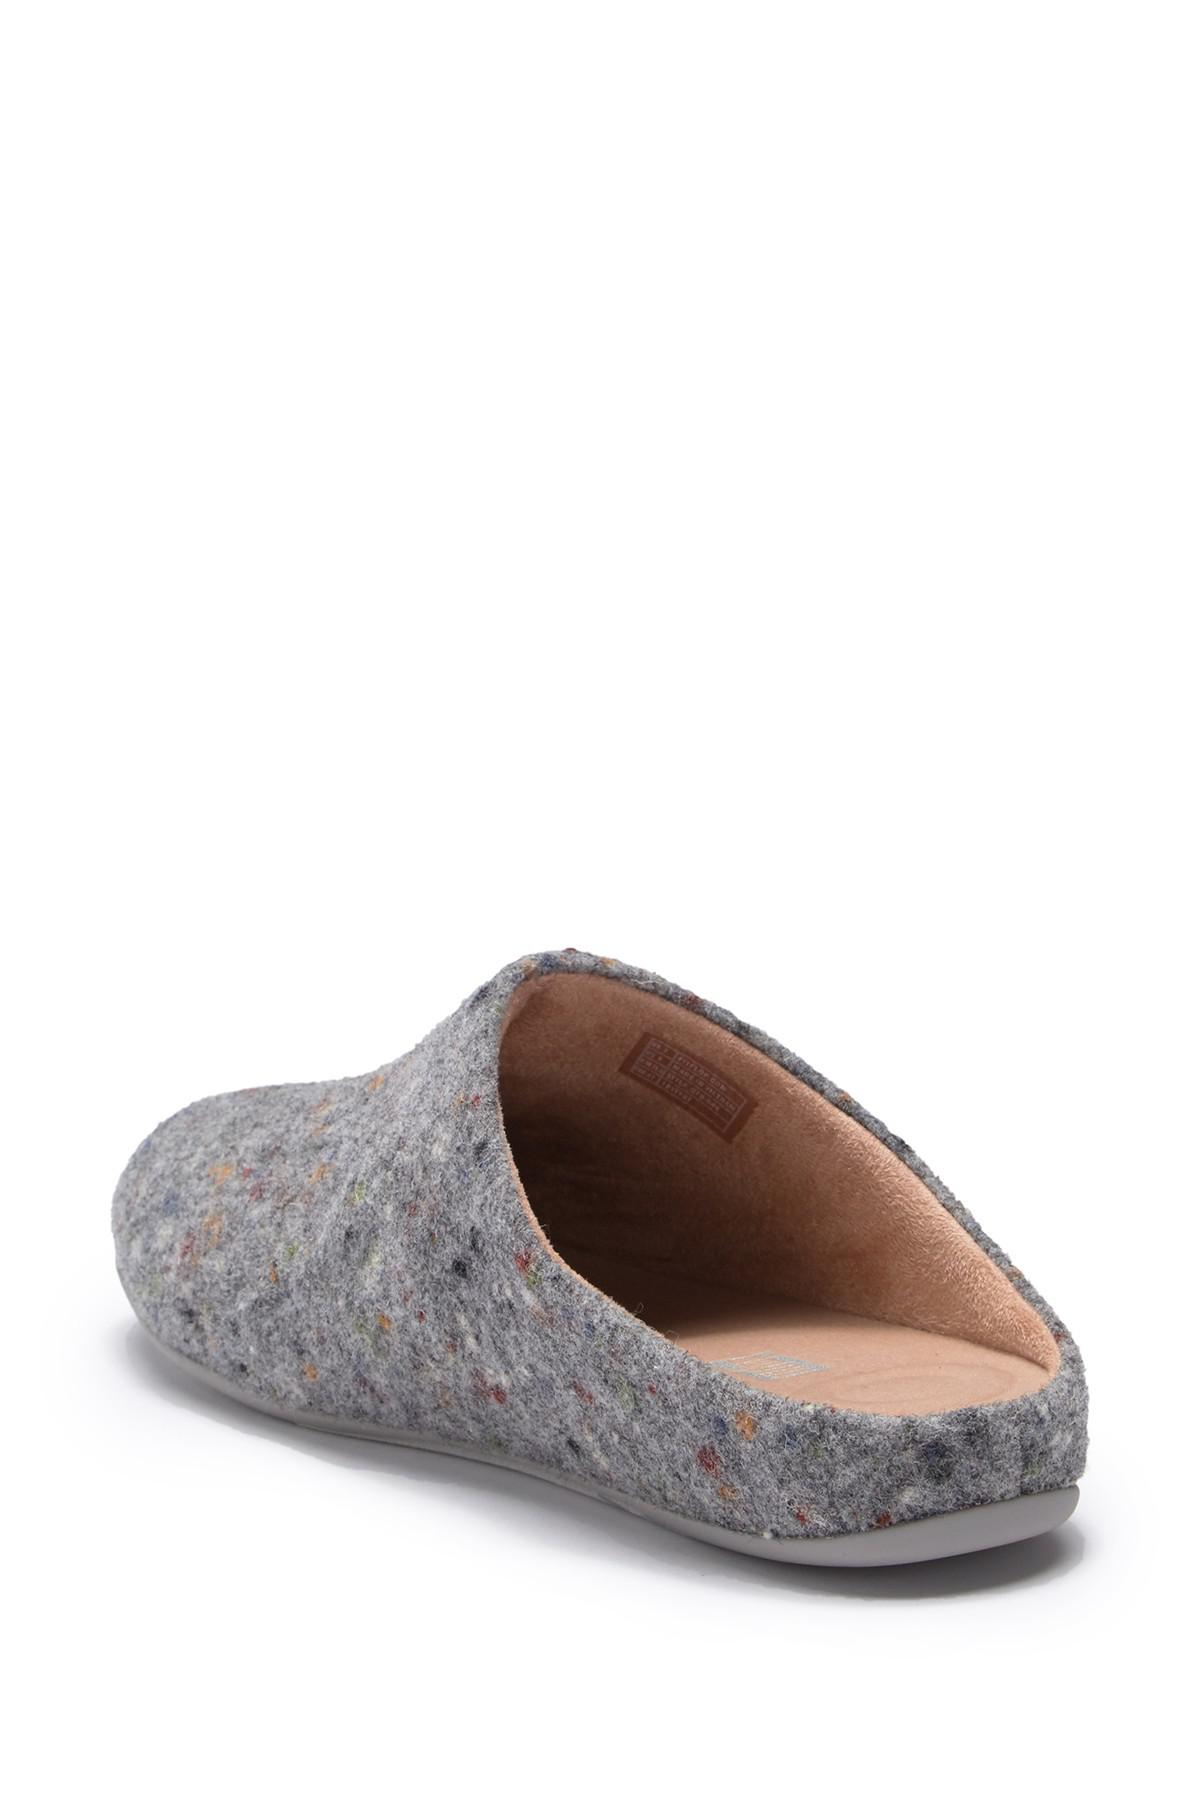 f30a5e83373d Fitflop Chrissie Speckle Felt Slippers in Gray - Lyst